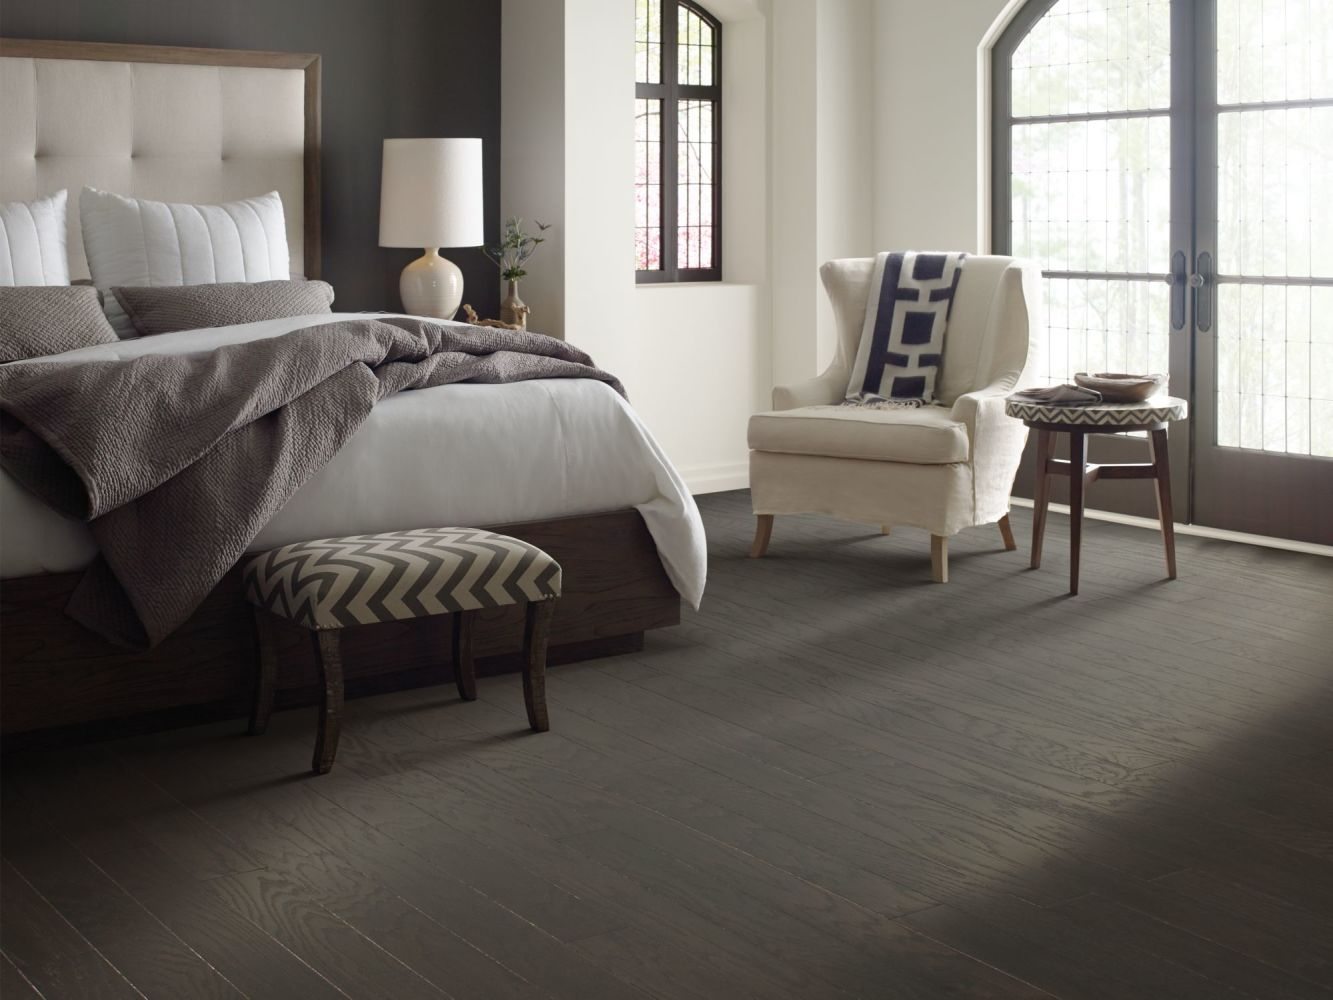 Shaw Floors Ashton Woods Homes Timeless 3.25″ Charcoal 05013_A020S